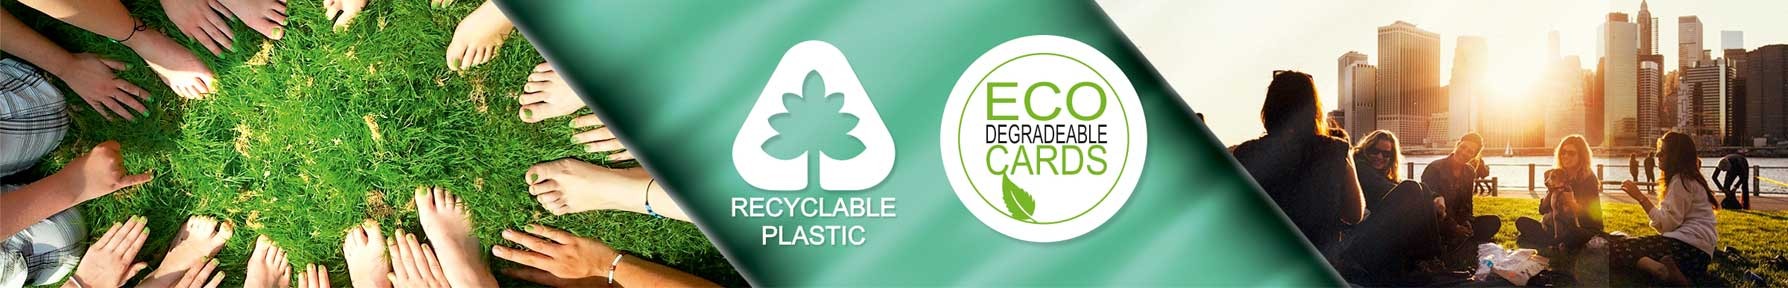 Plastic membership cards eco friendly and recyclable from Premier Eco Cards